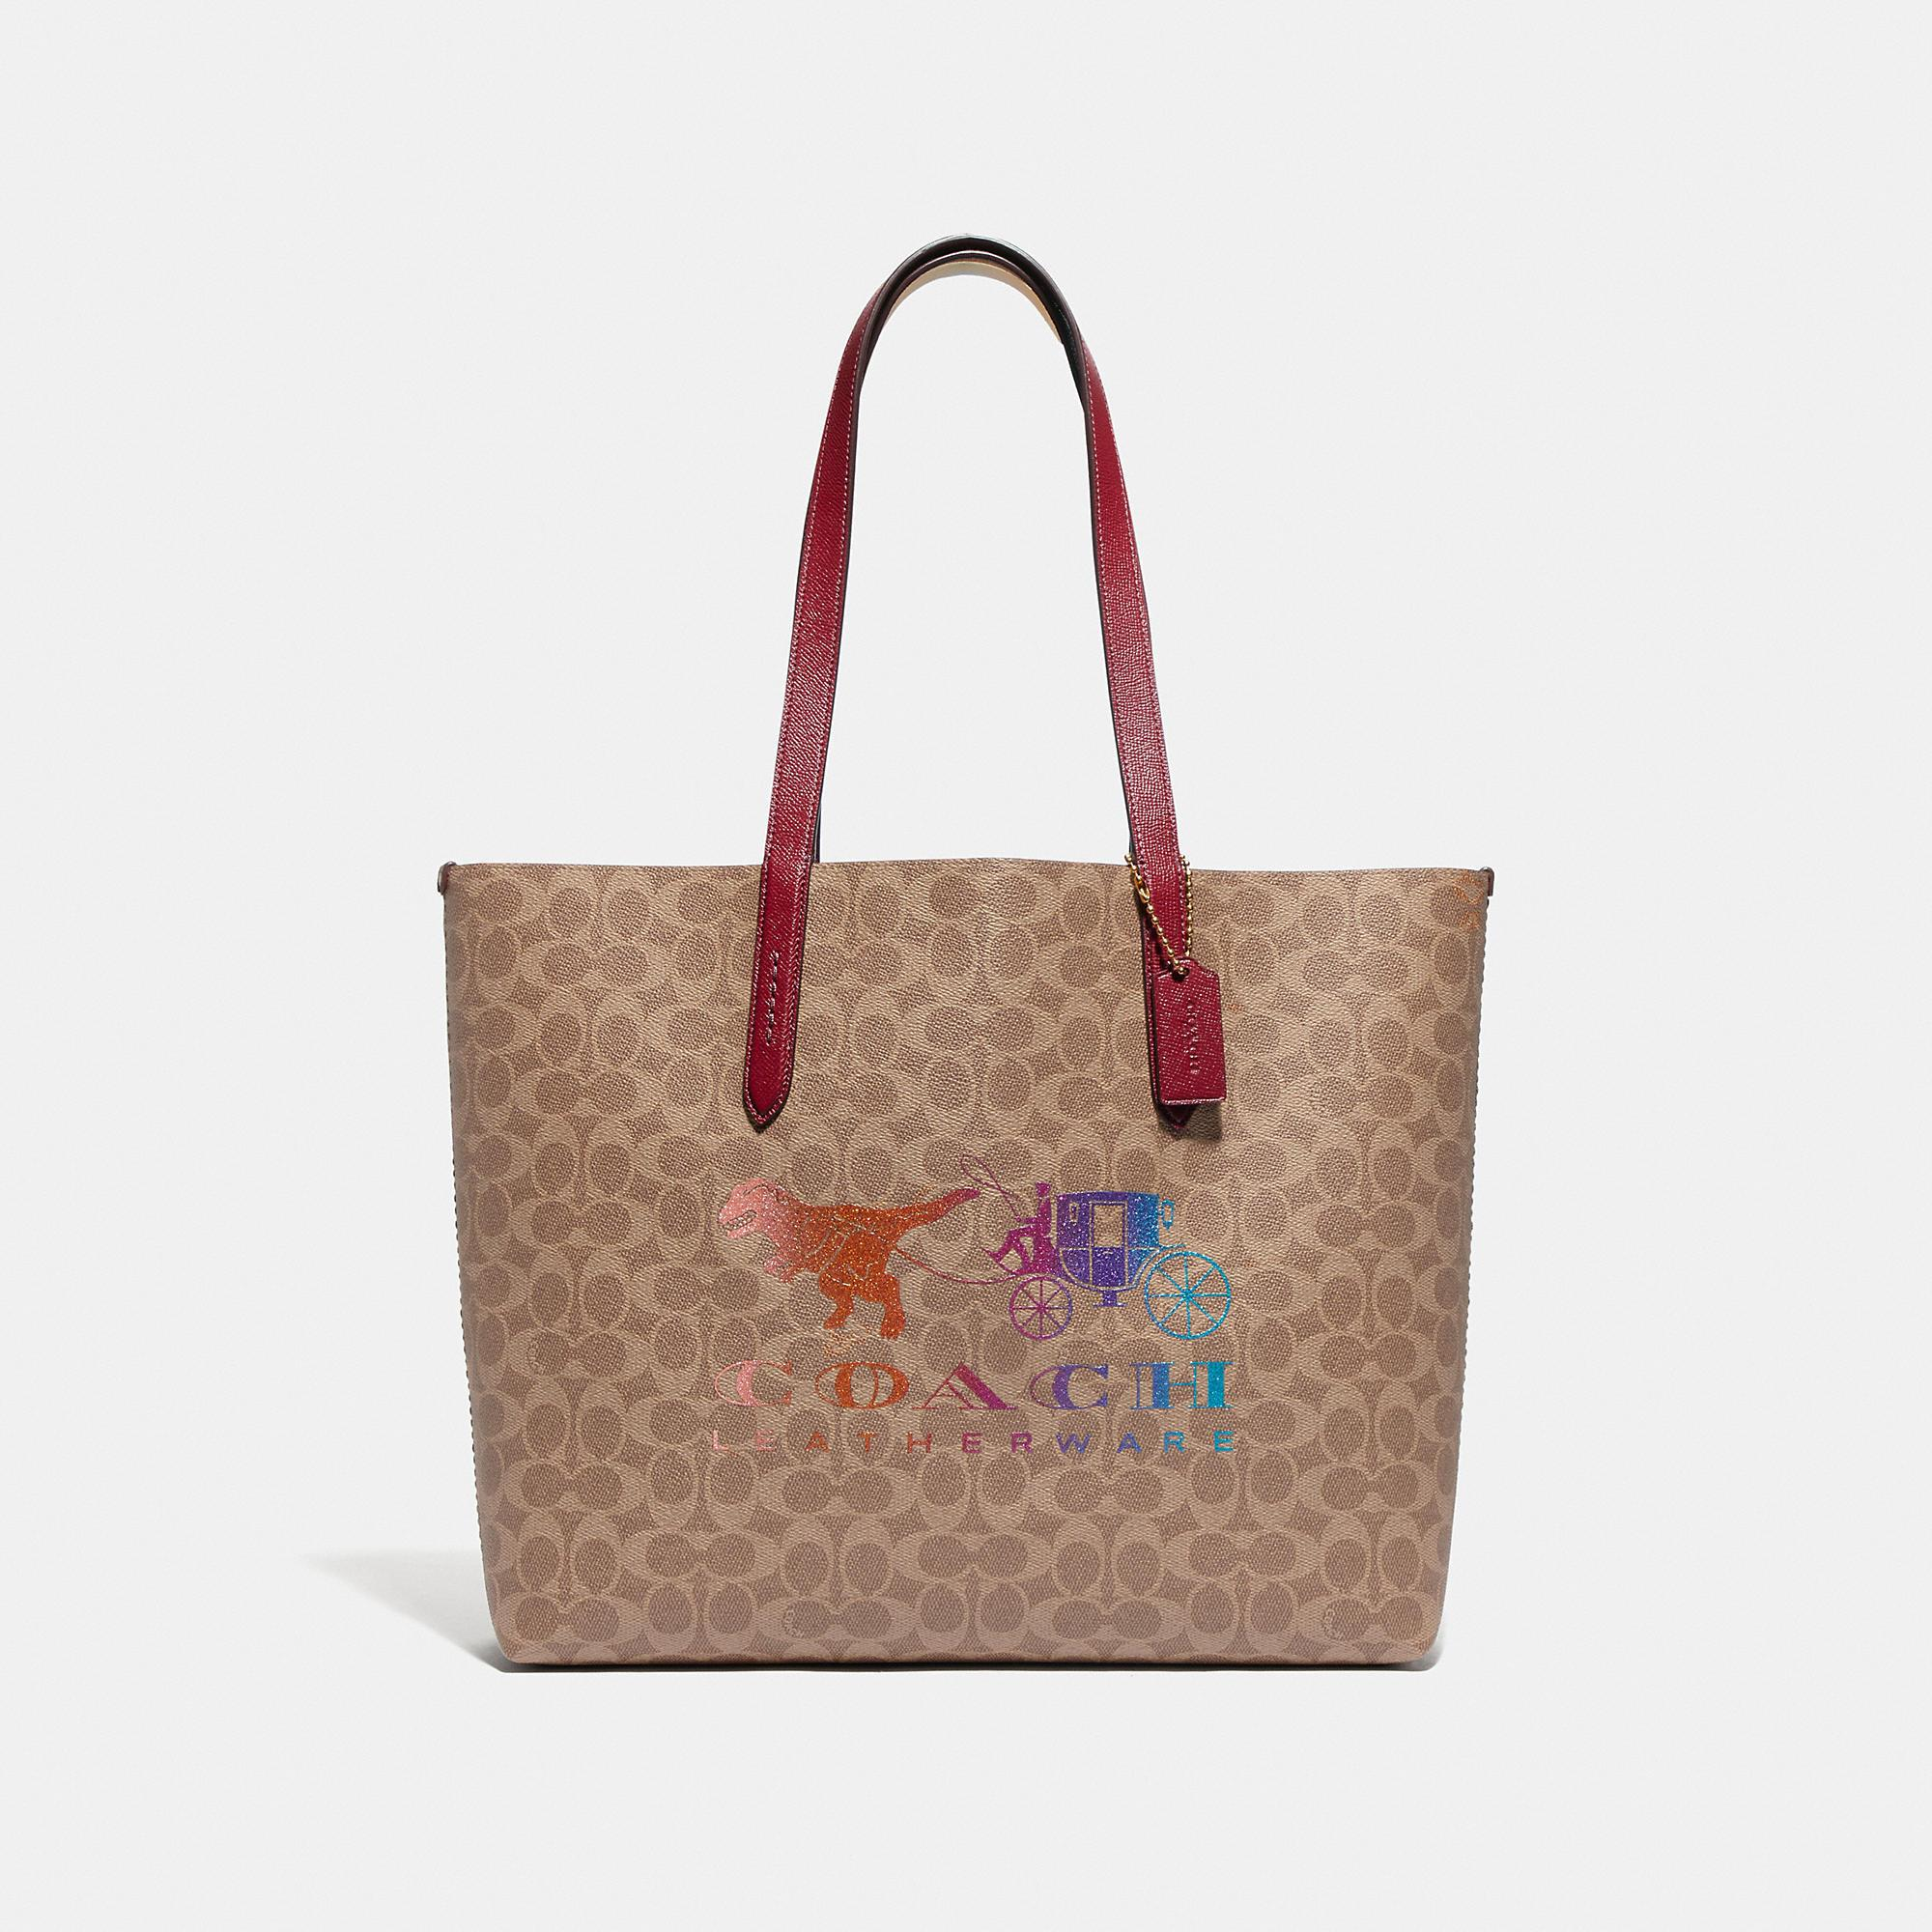 Highline Tote In Signature Canvas With Rexy And Carriage